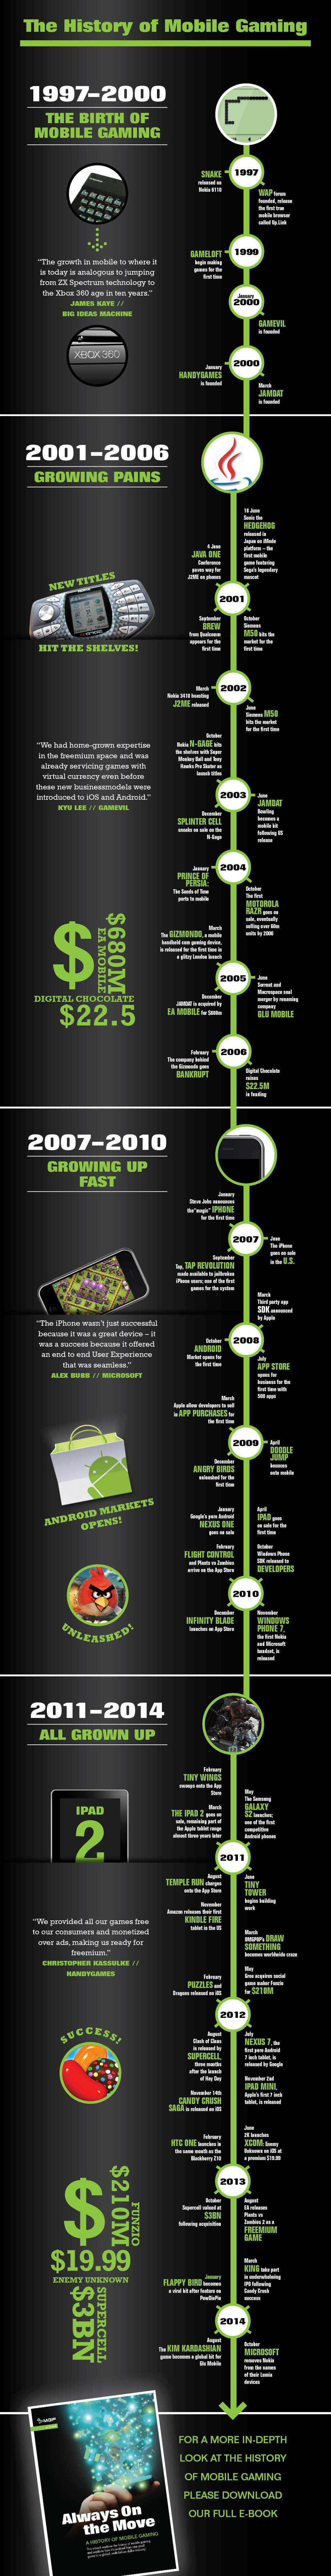 History_of_mobile_games_infographic